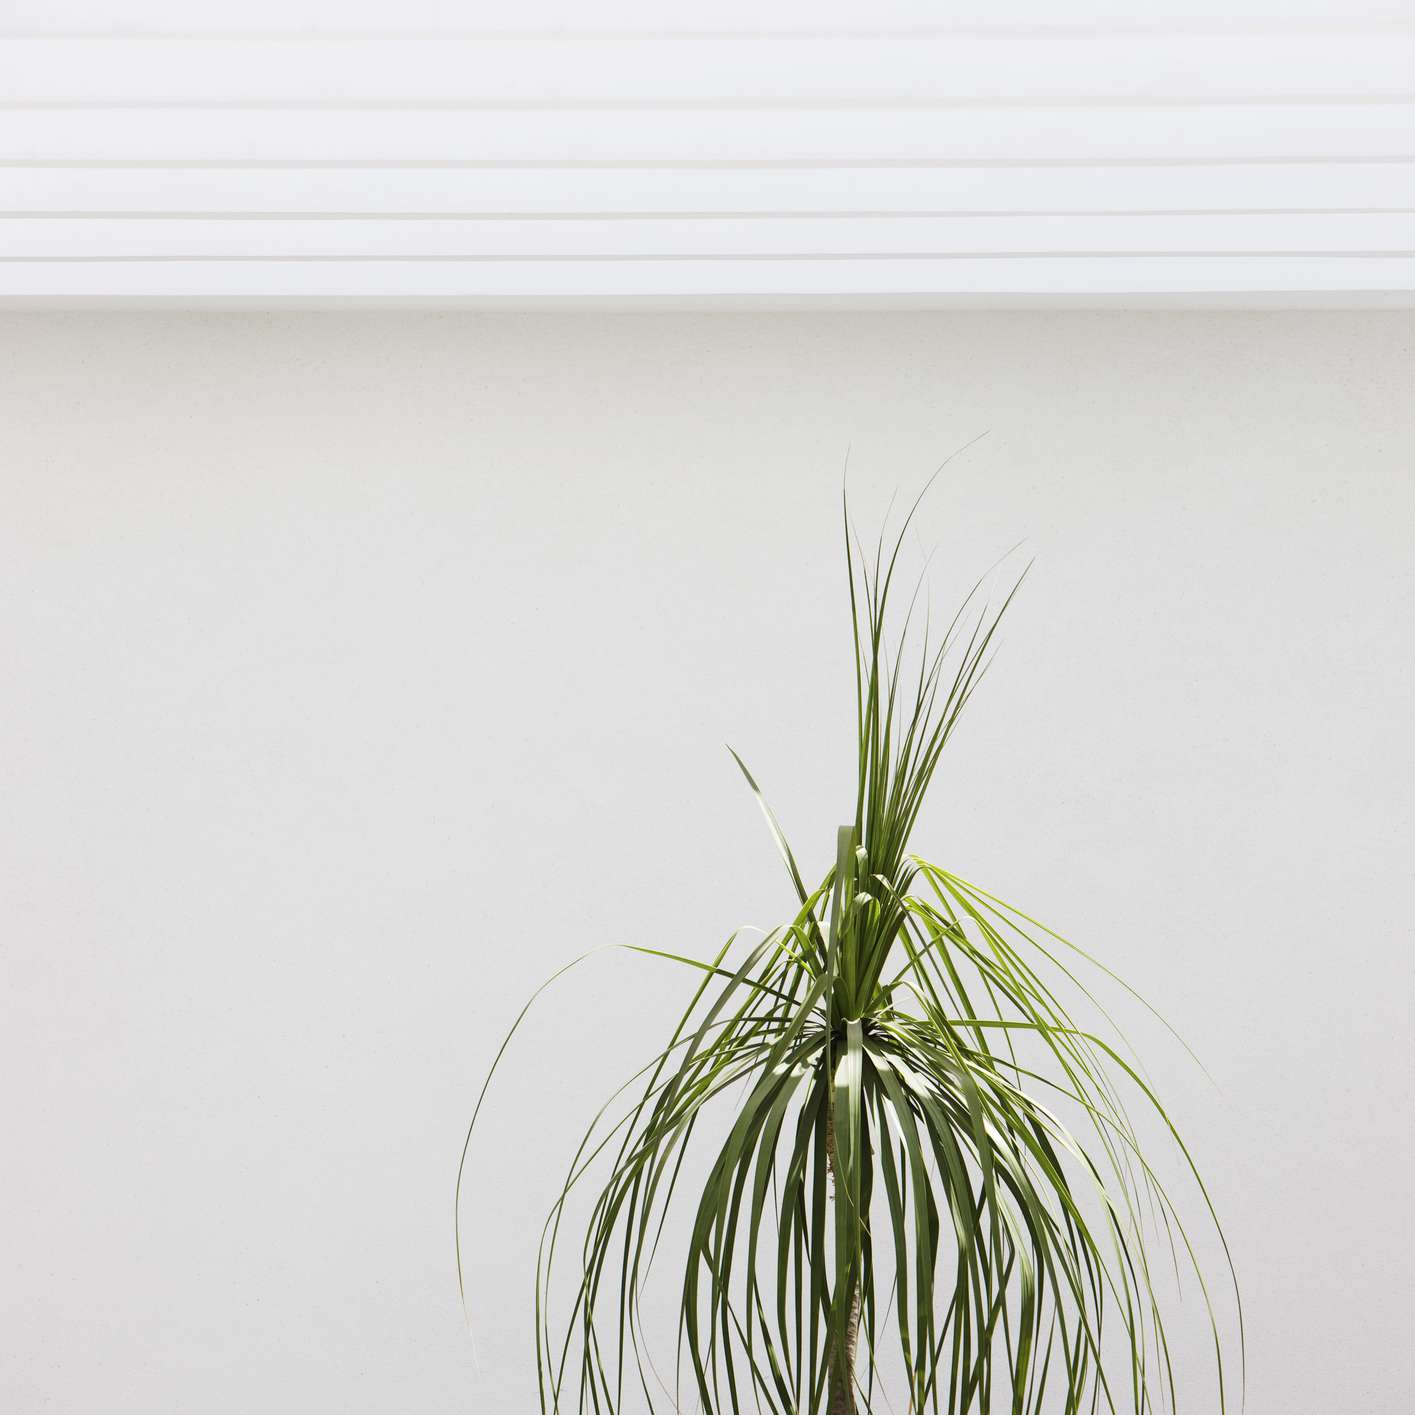 Top leaves of ponytail palm (Beaucarnea recurvata)